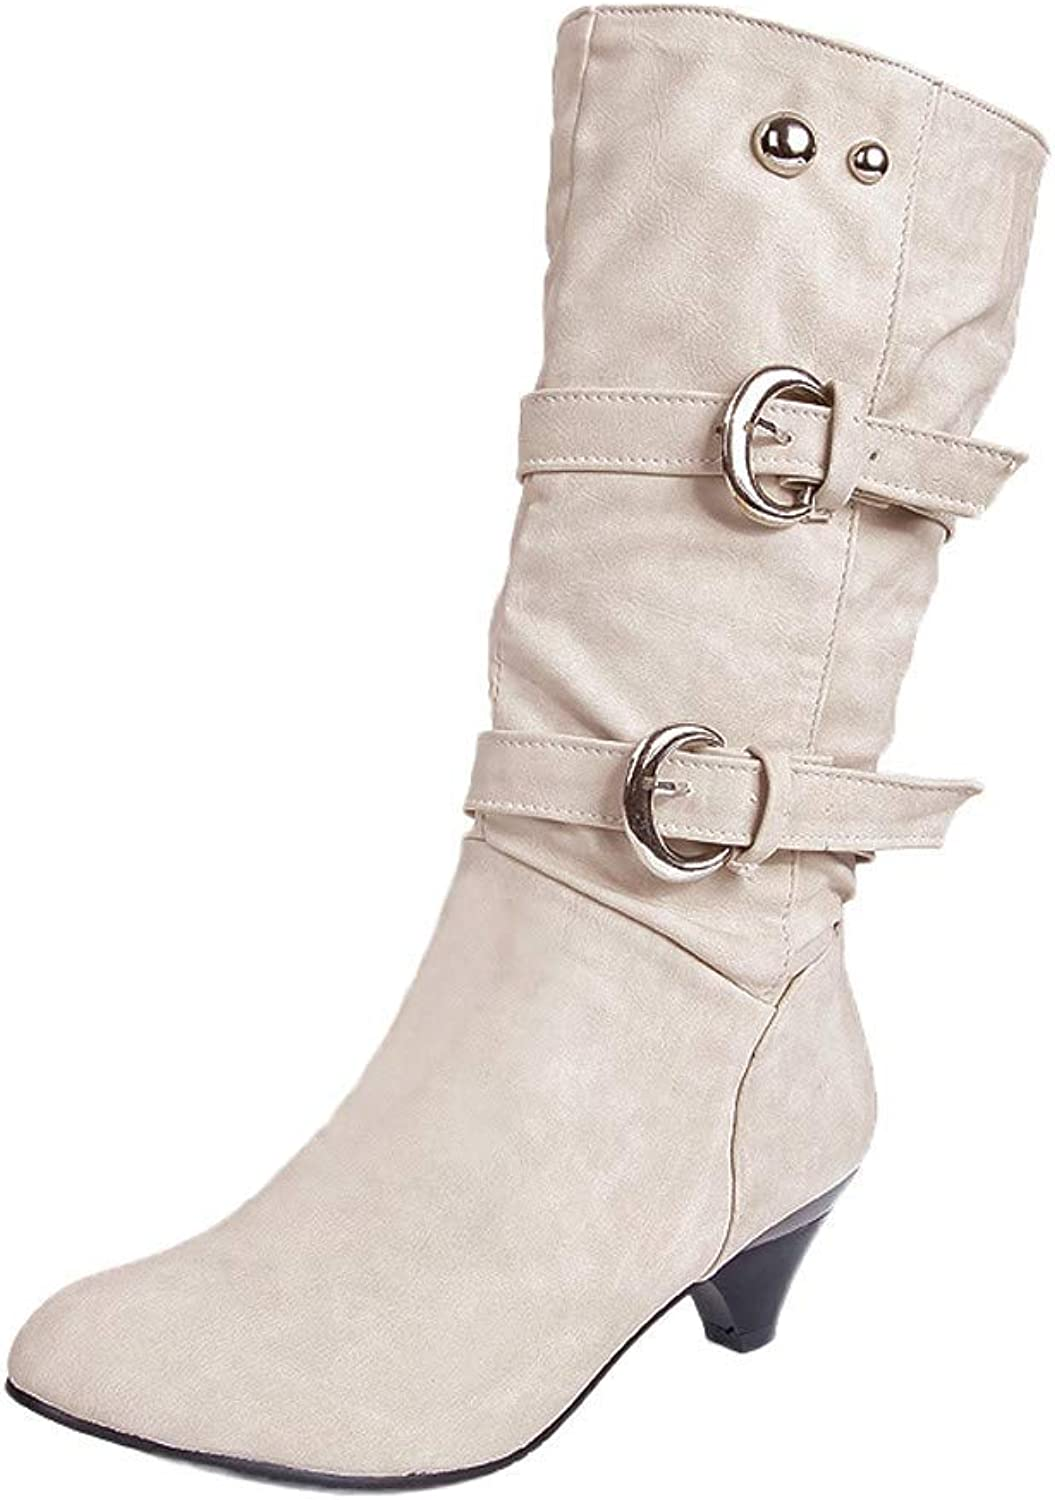 So8ooa Lady Boots Round Head Fashion Causal Business Wild Comfortable colorful Elegant Anti Slip Buckle Cup Center Tube Comfortale Female Martin Boots